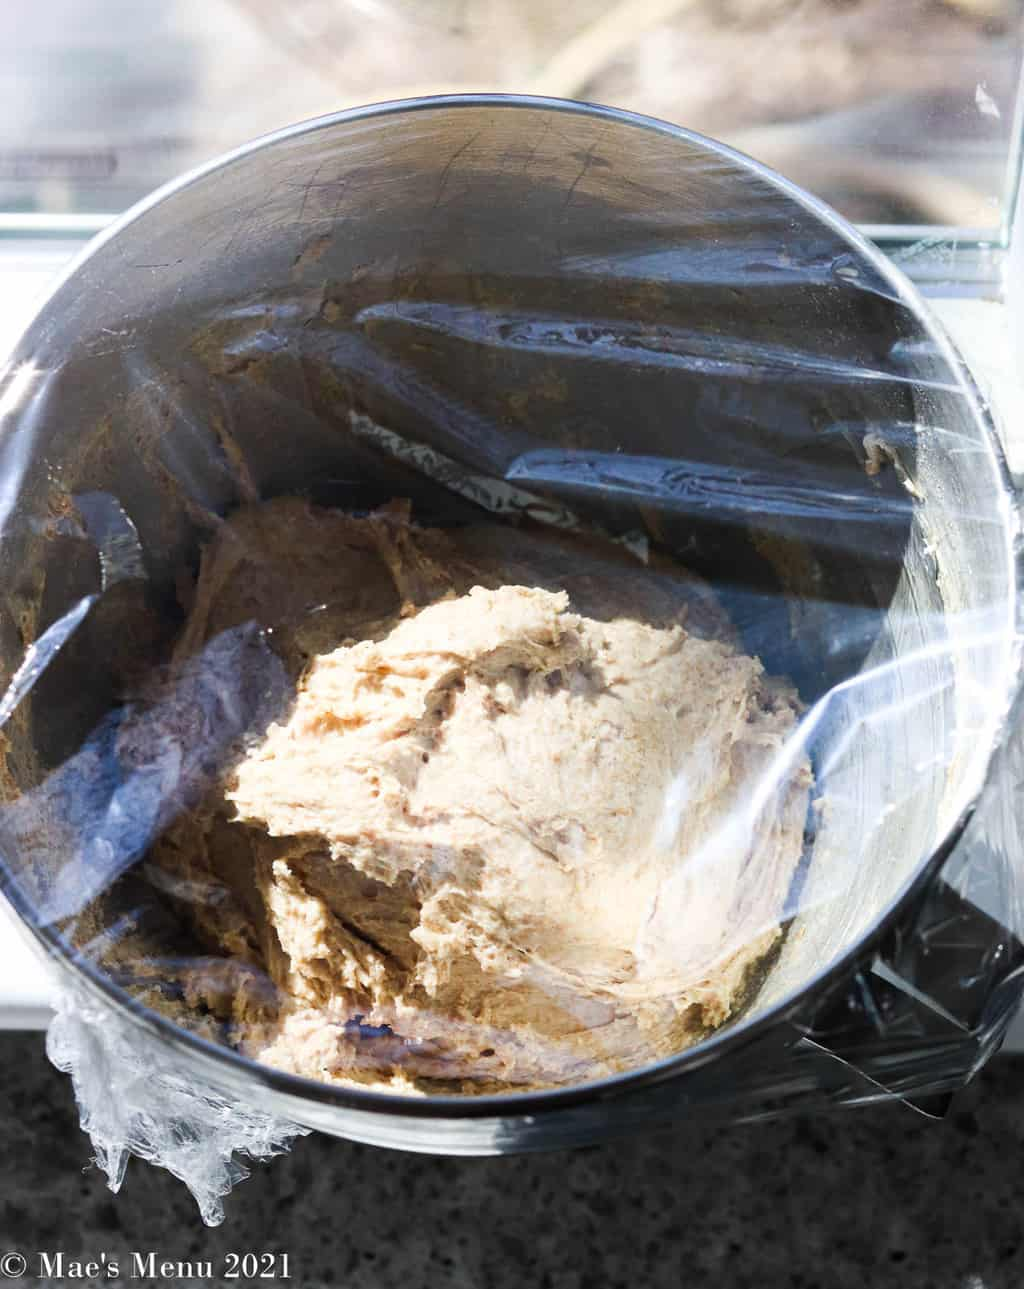 An overhead shot of bread leavening in a bowl